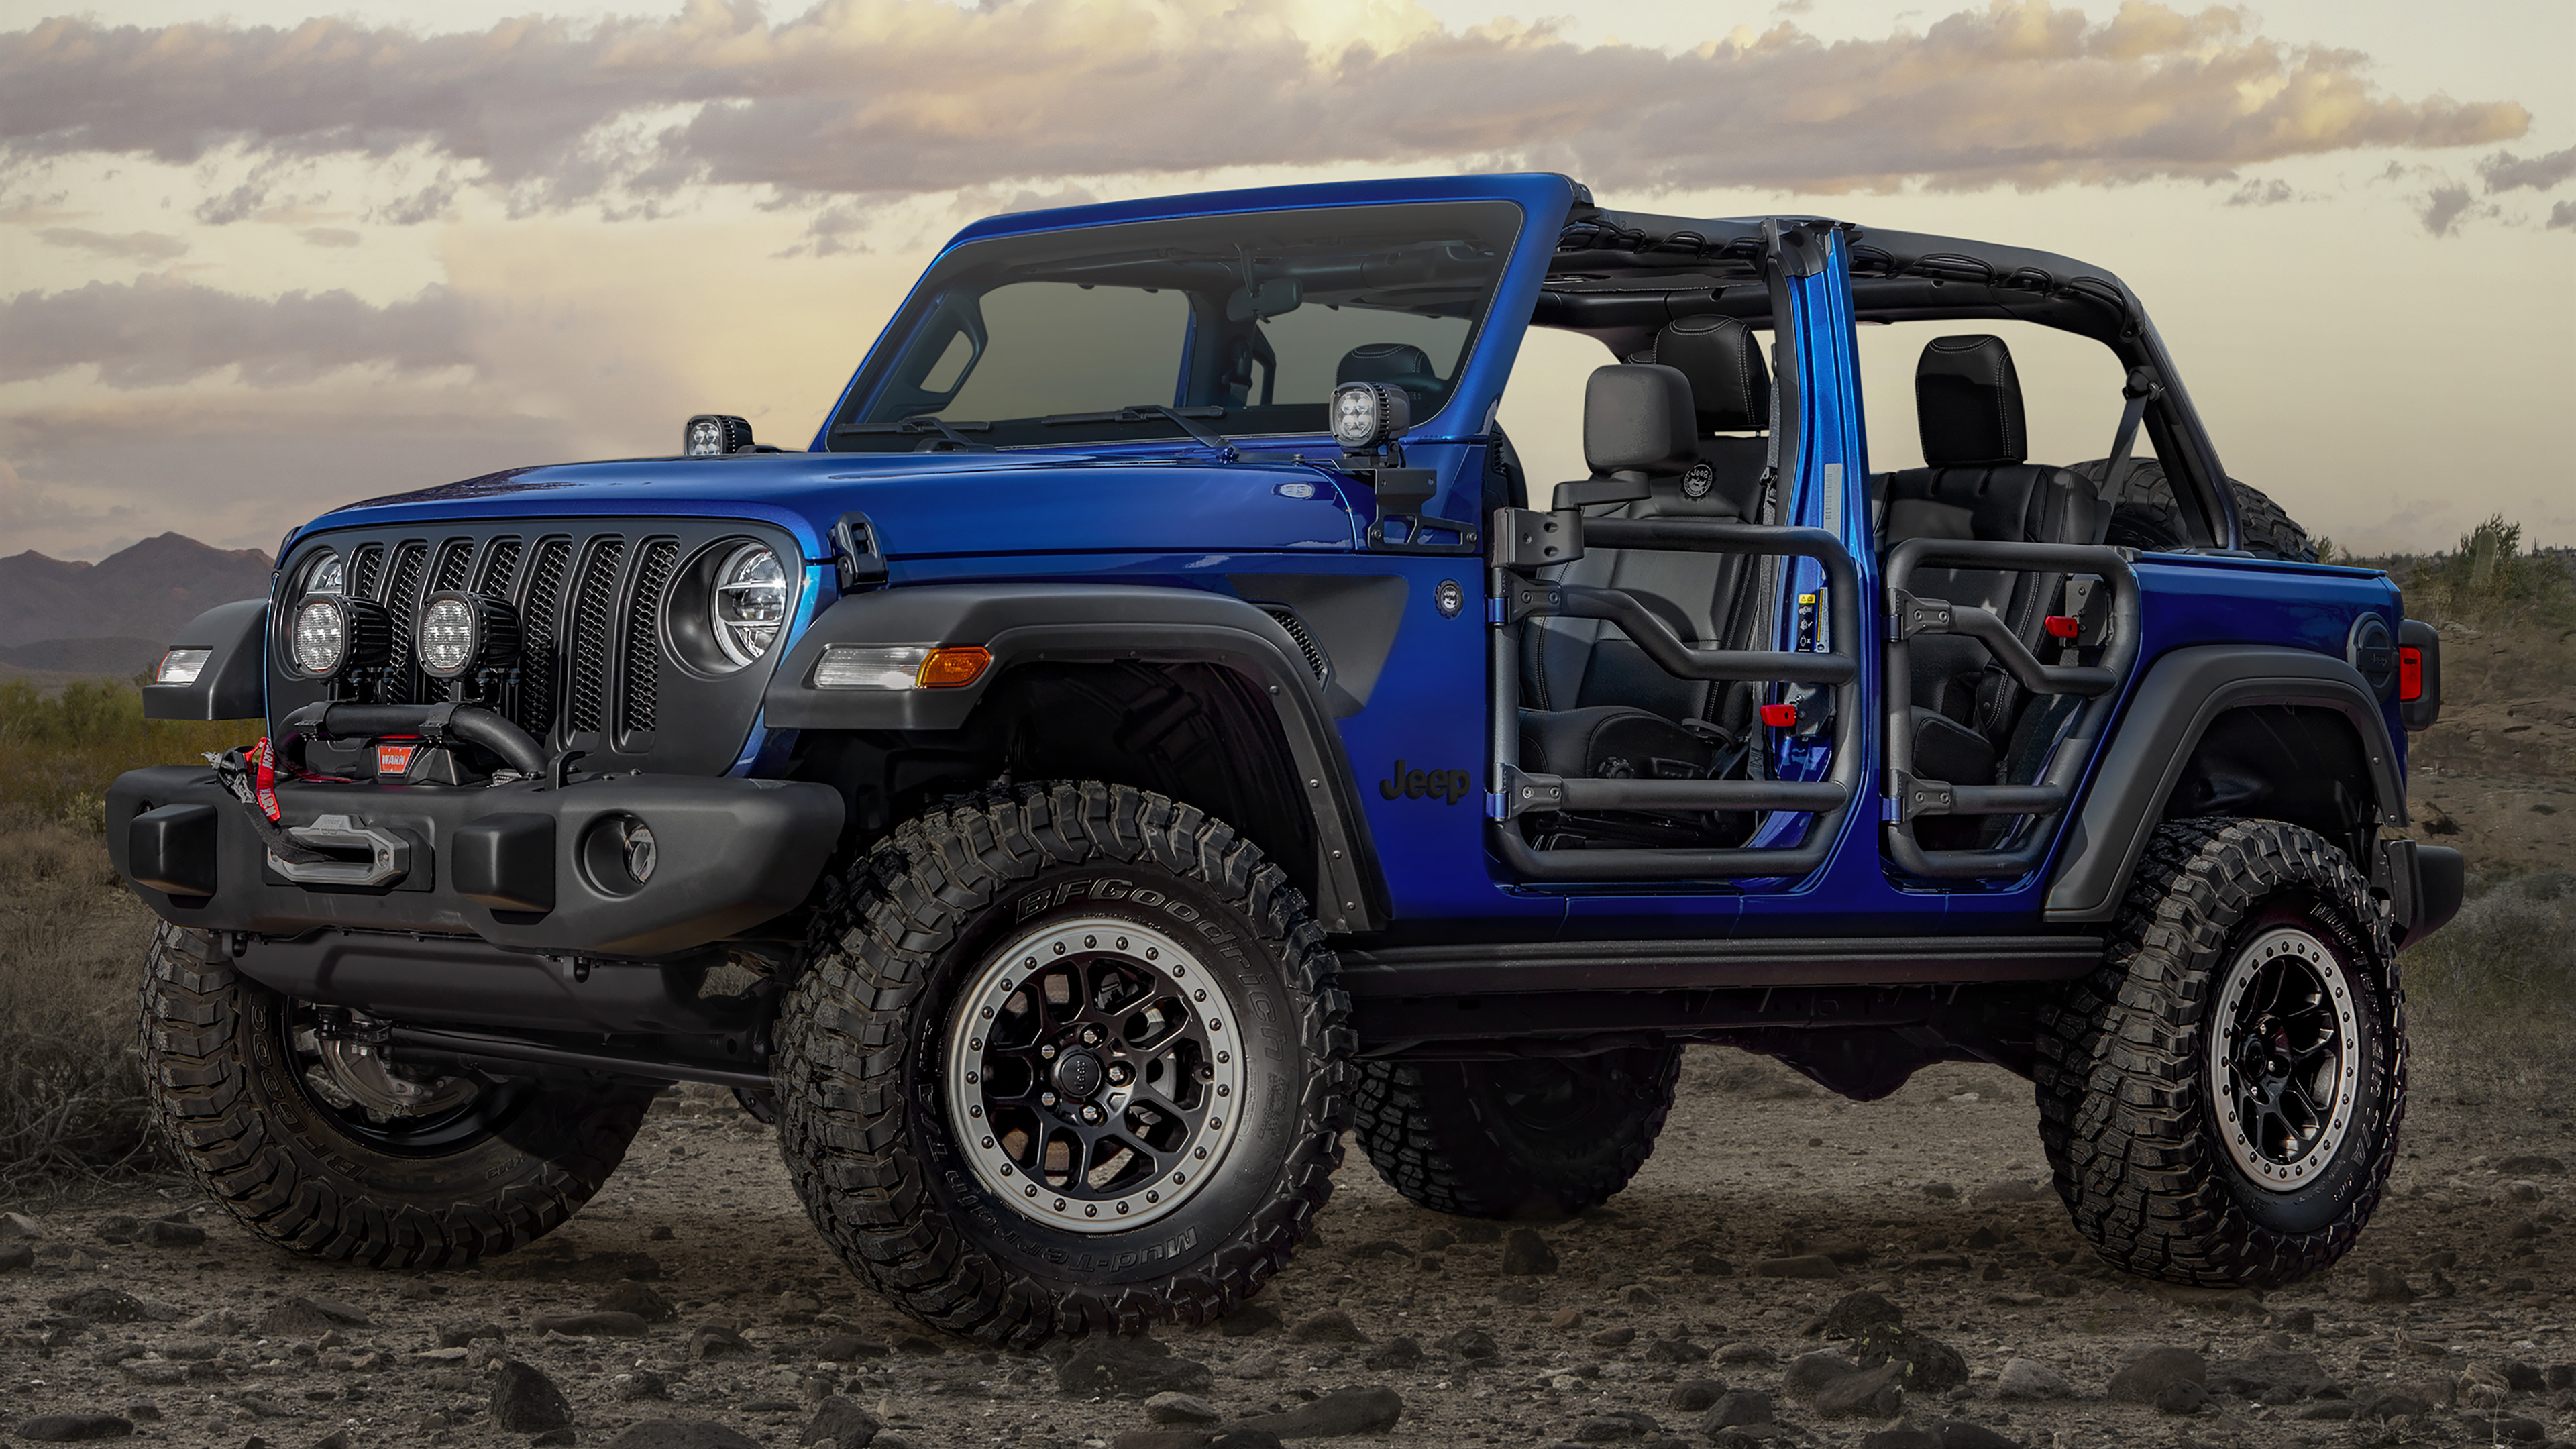 2020 mopar jeep wrangler unlimited 4k wallpaper | hd car